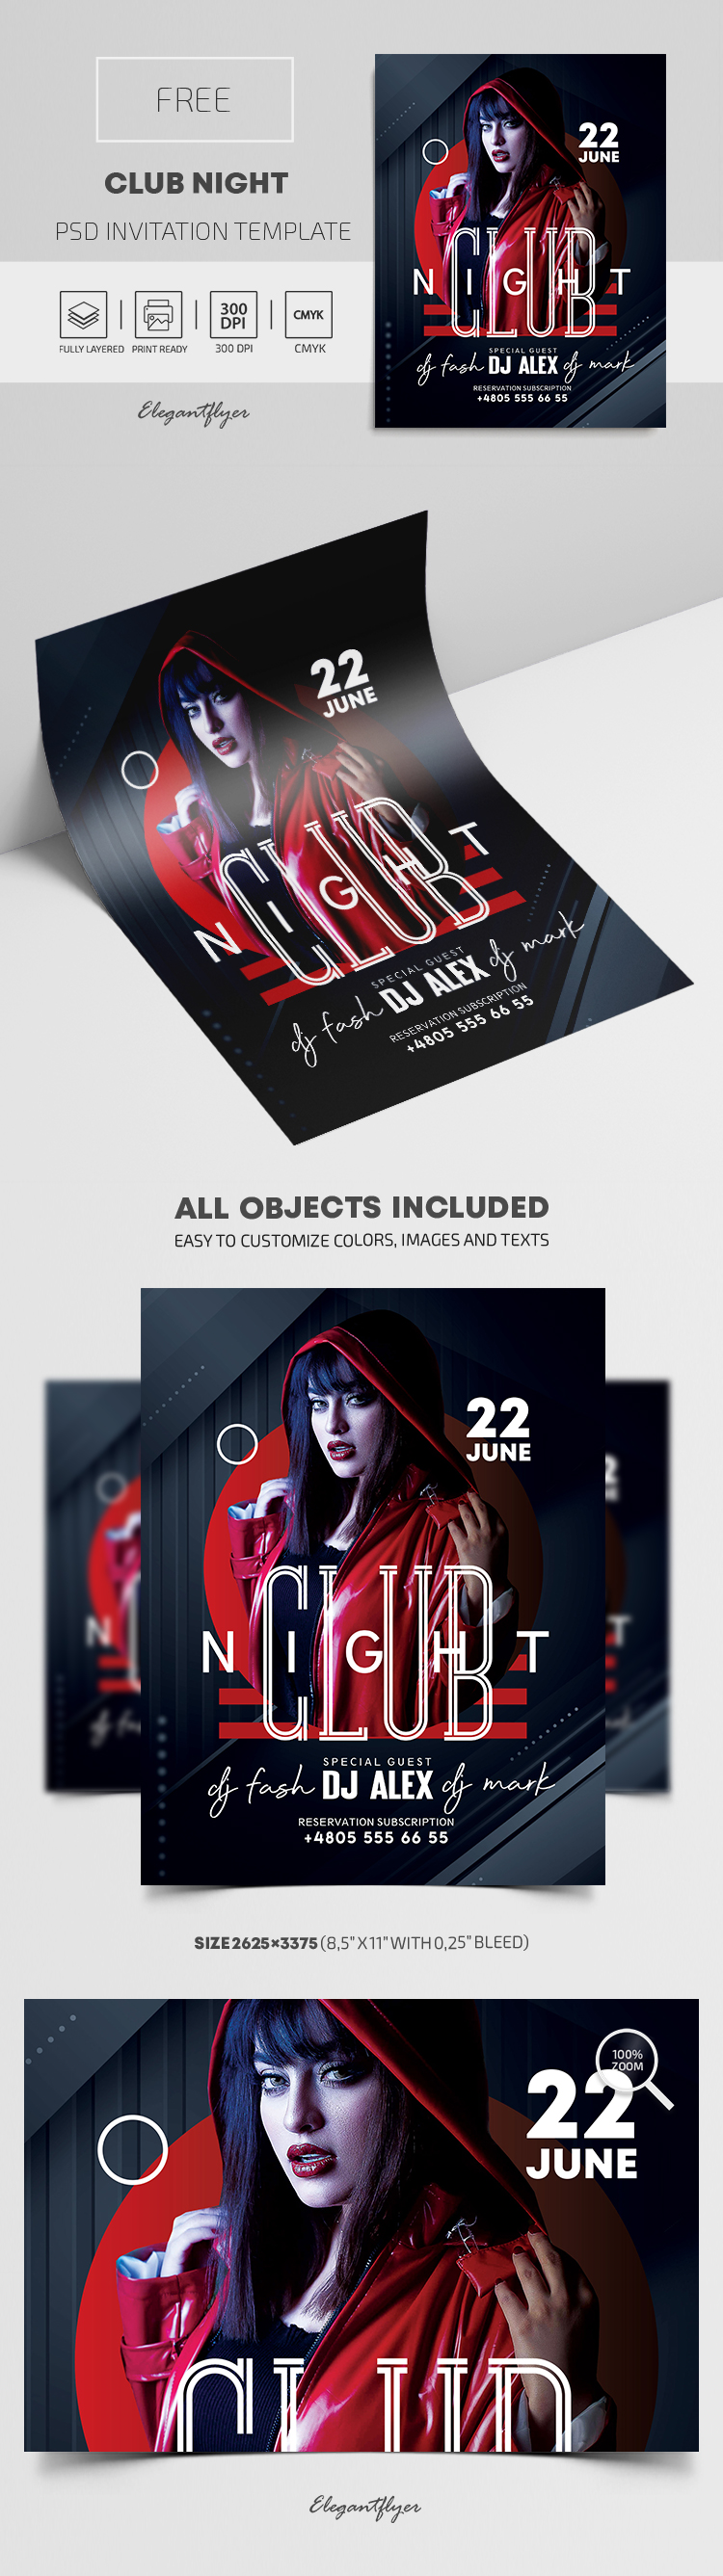 Club Night – Free PSD Invitation Template